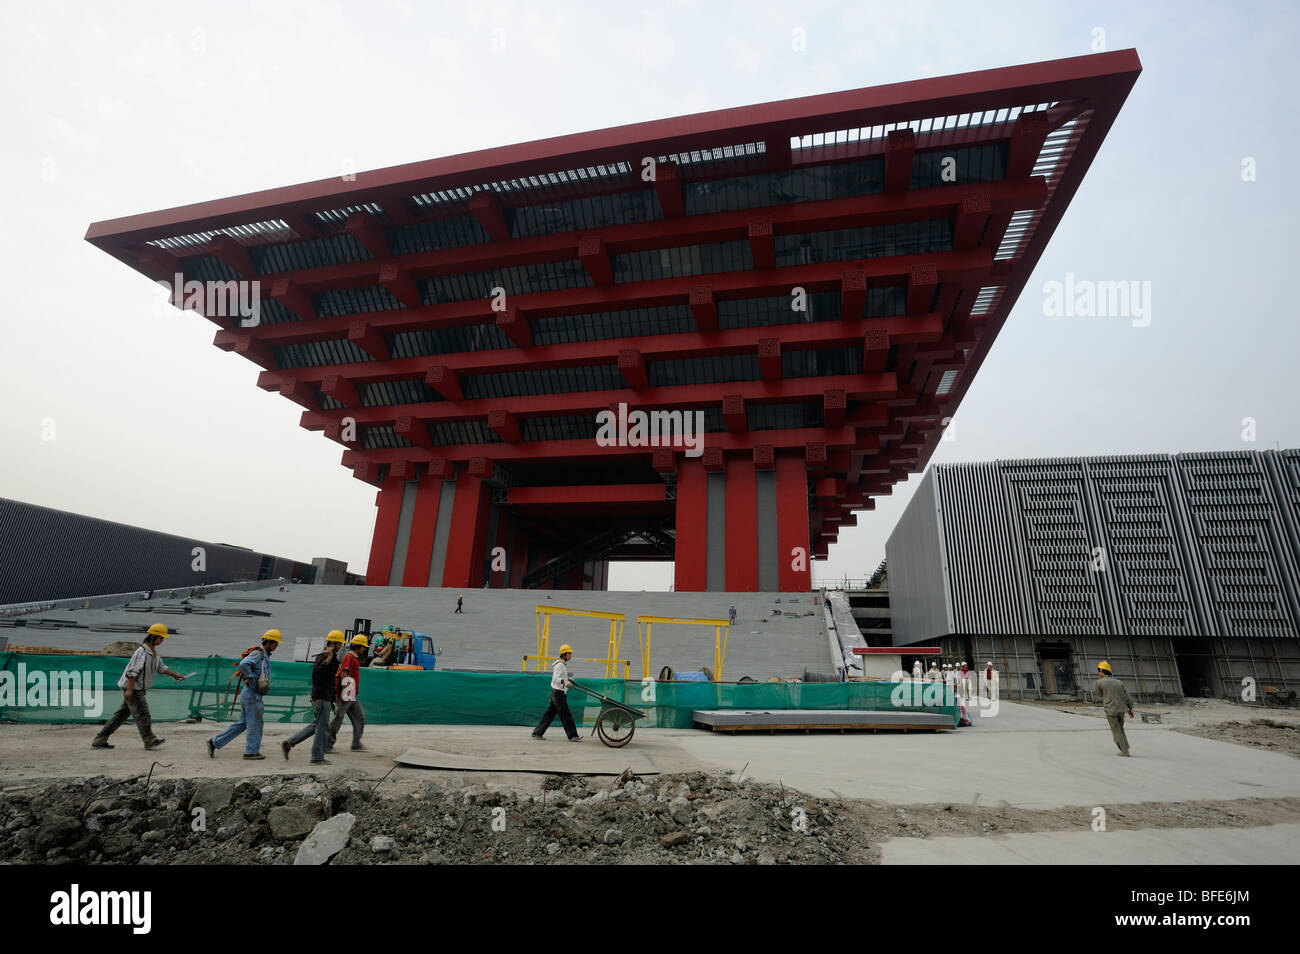 Construction site of China Pavilion of the World Expo 2010 in Shanghai, China.15-Oct-2009 - Stock Image